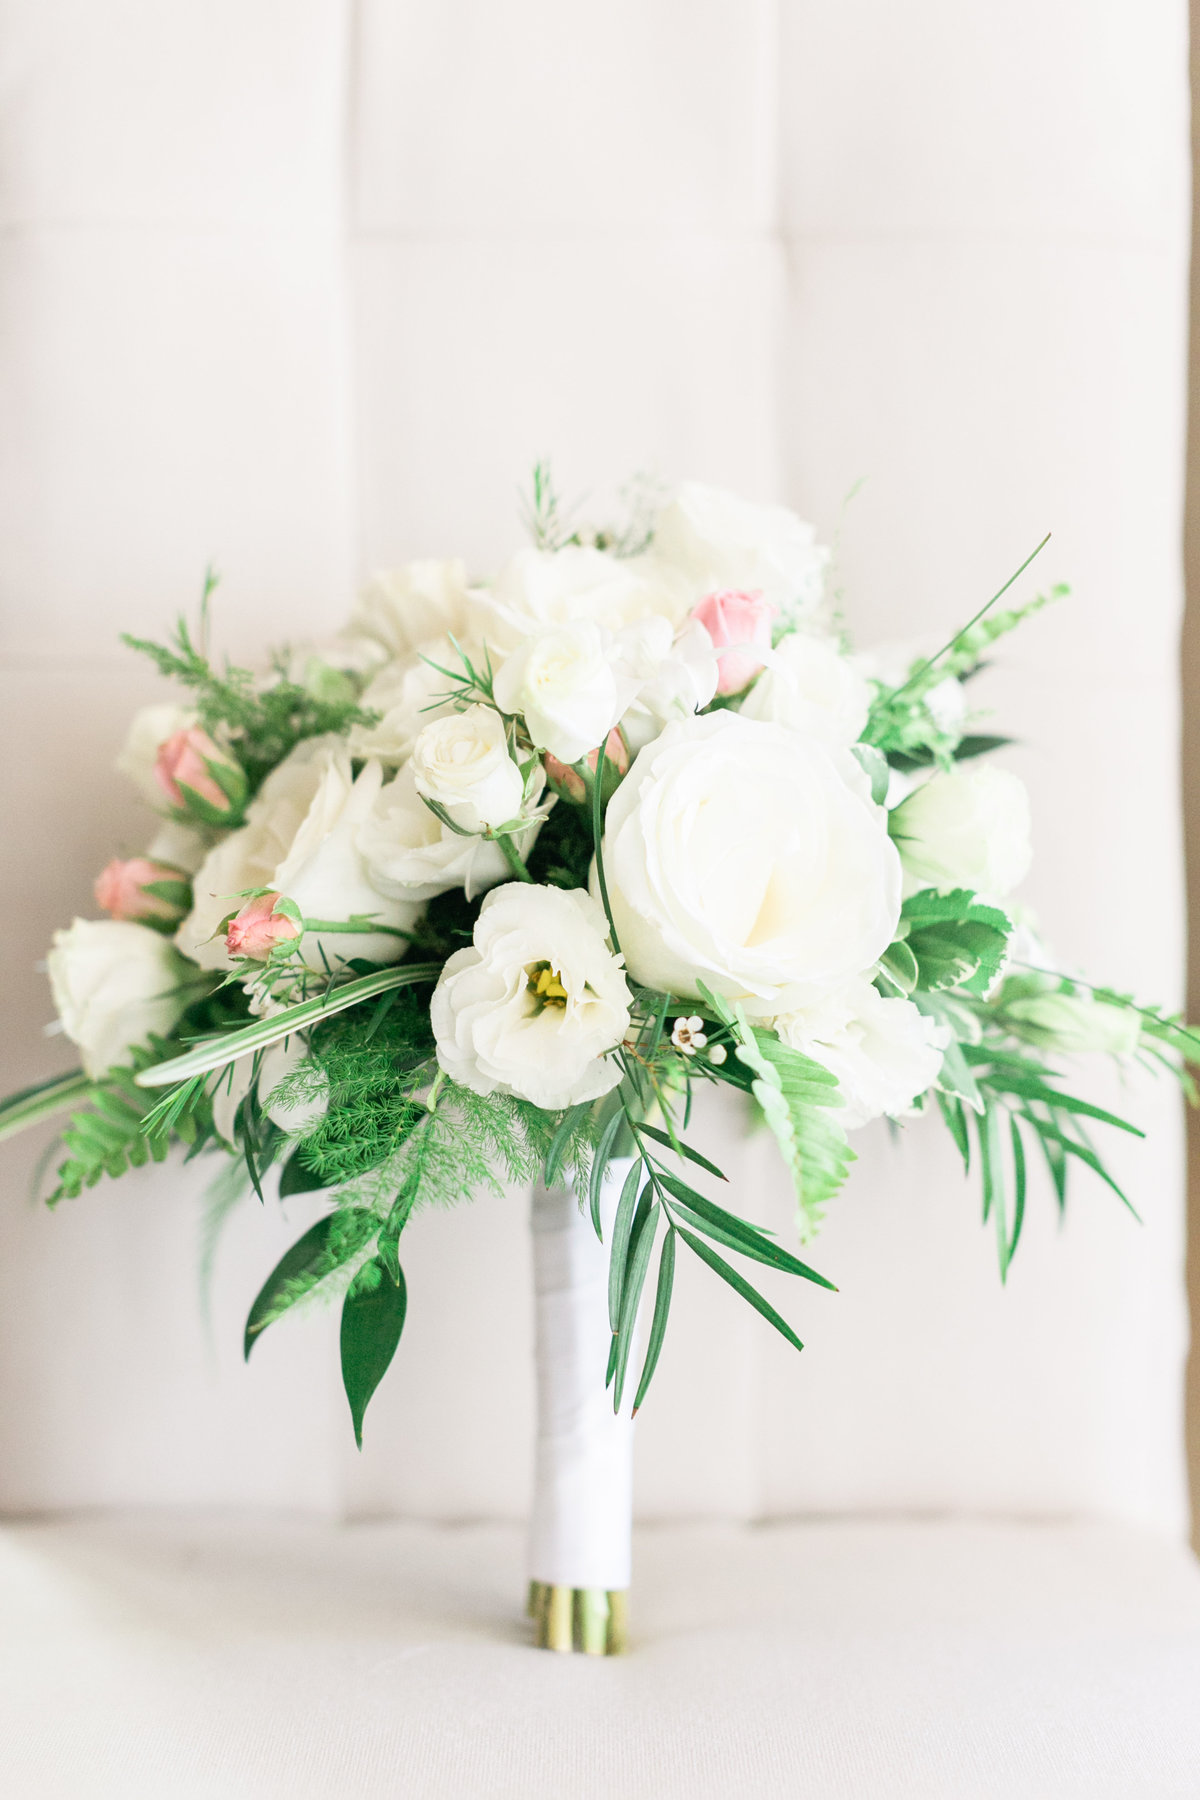 Simple flower scheme, green and white bridal bouquet